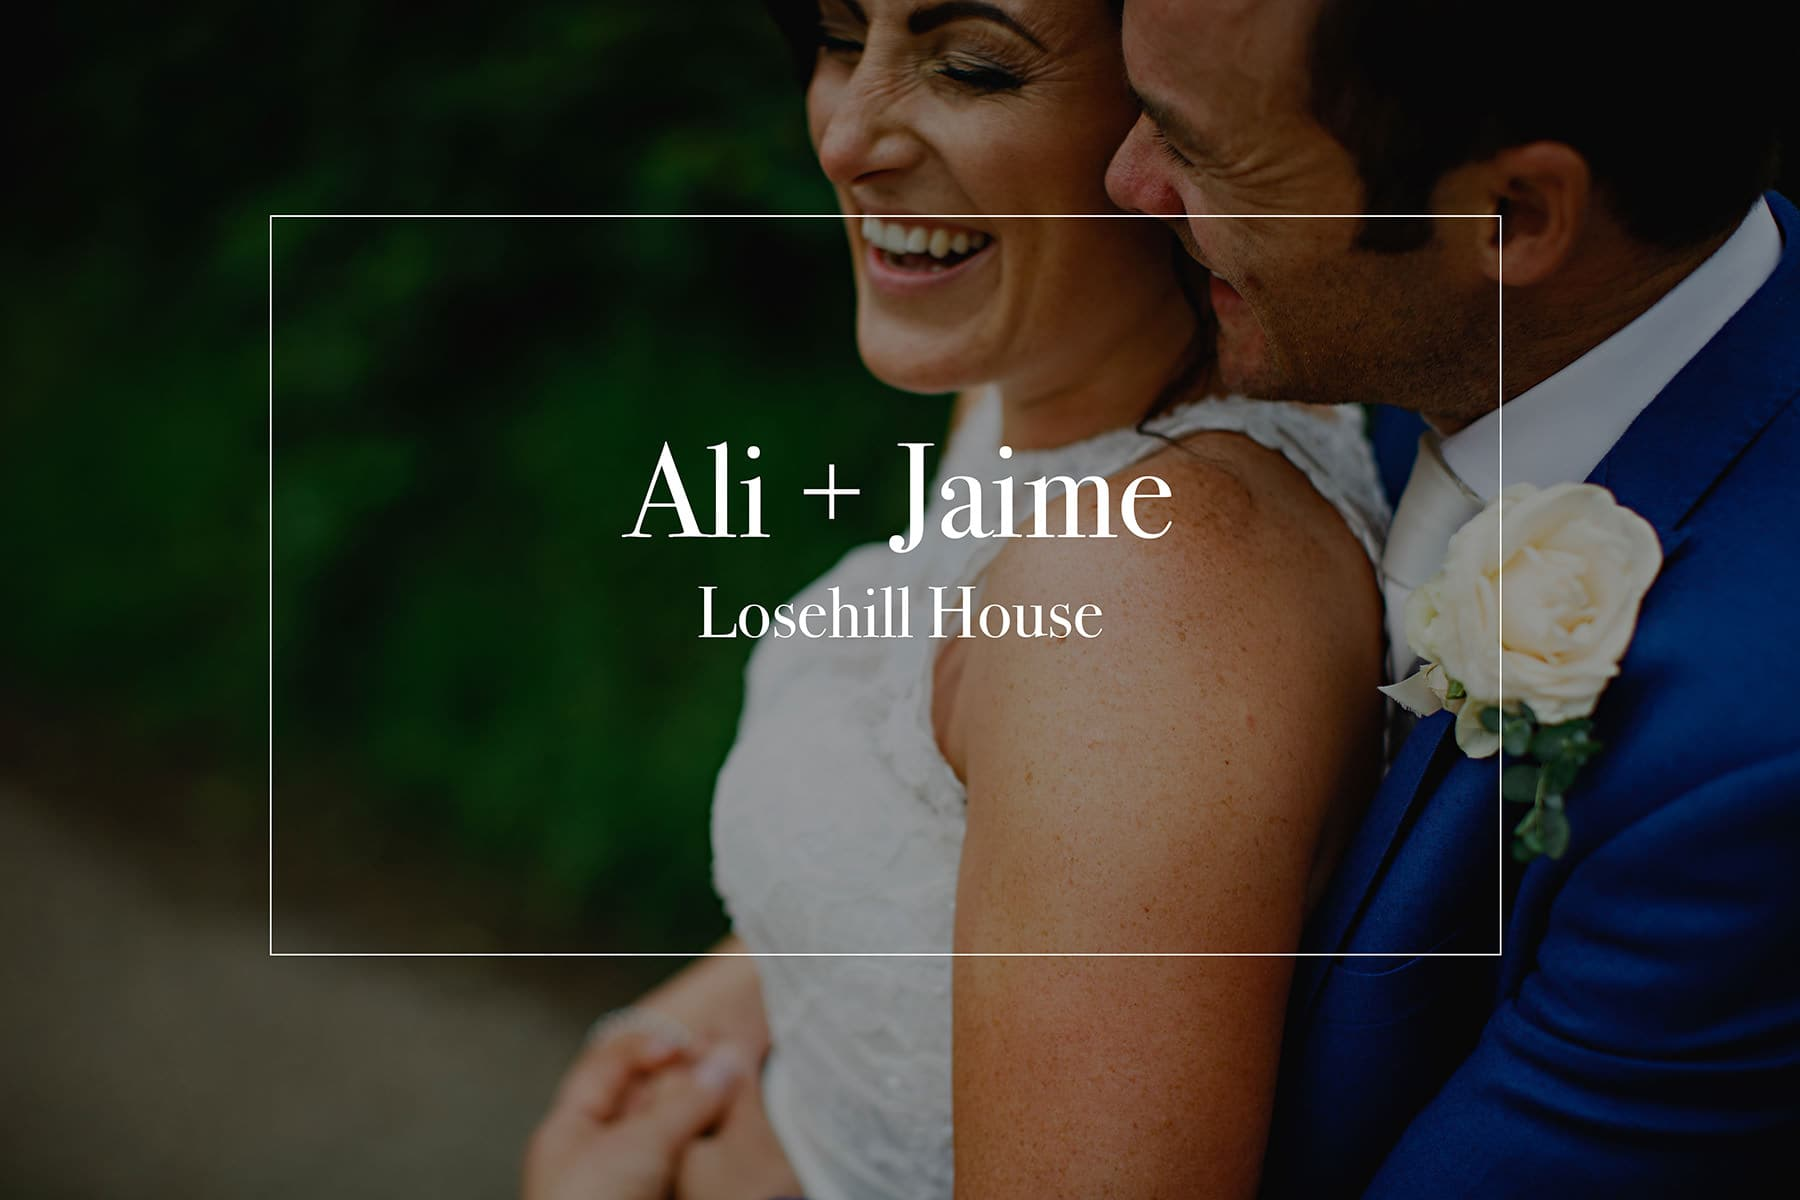 Wedding photos at Losehill House in Derbyshire - the bride and groom holding each other